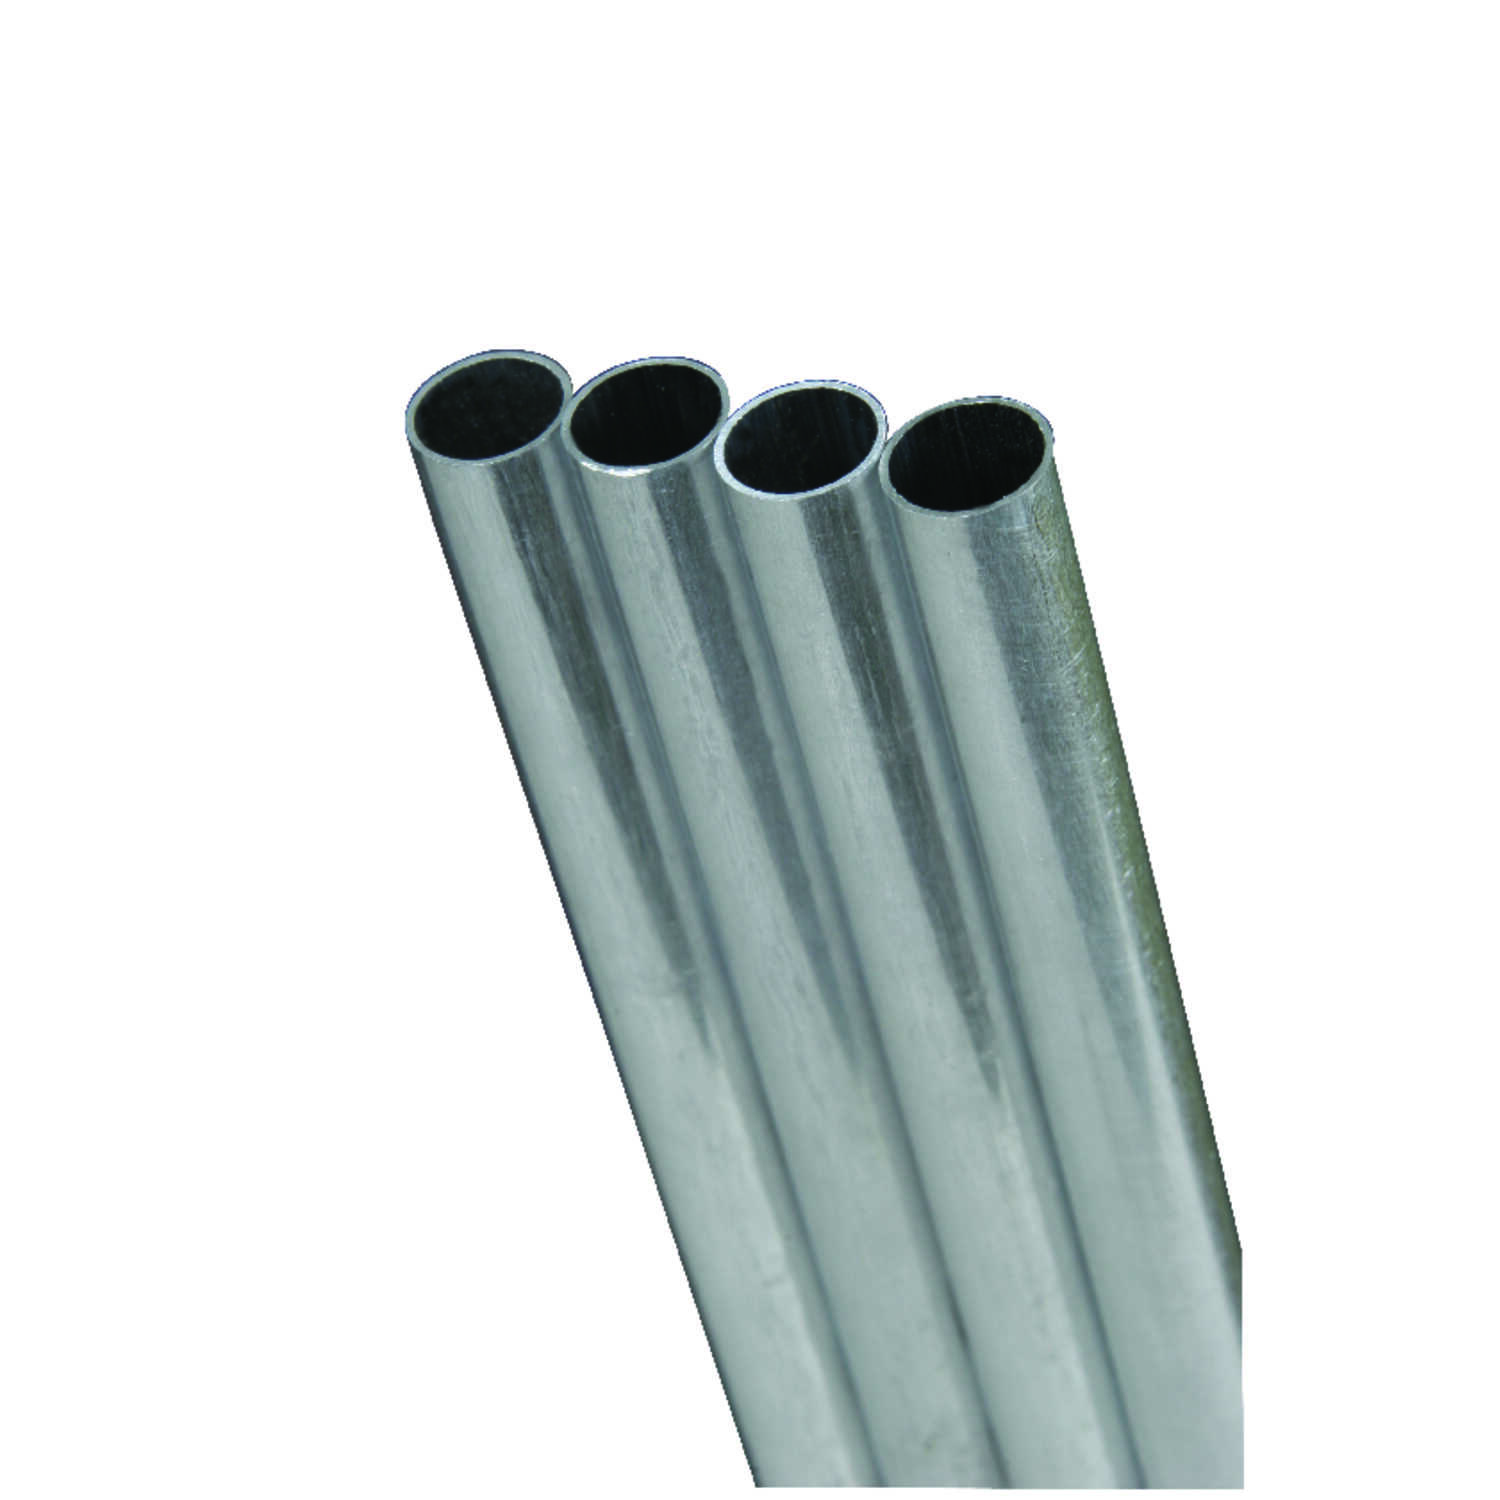 K&S  7/16 in. Dia. x 1 ft. L x 12 in. H Stainless Steel Tube  1 each